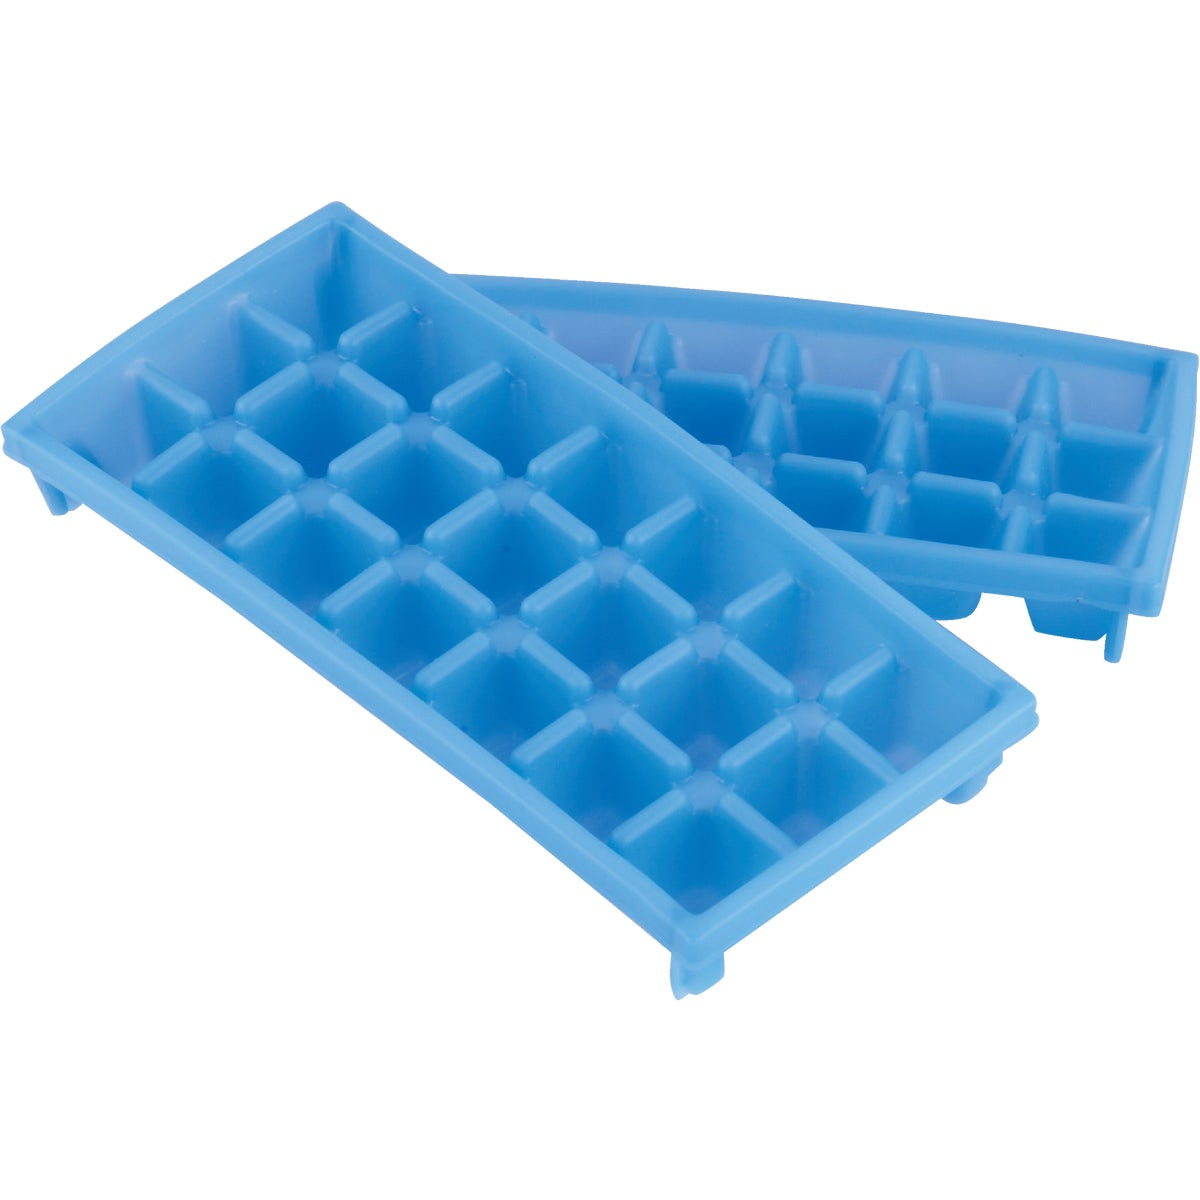 2 PK MINI ICE CUBE TRAYS - 44100 by Camco Mfg.